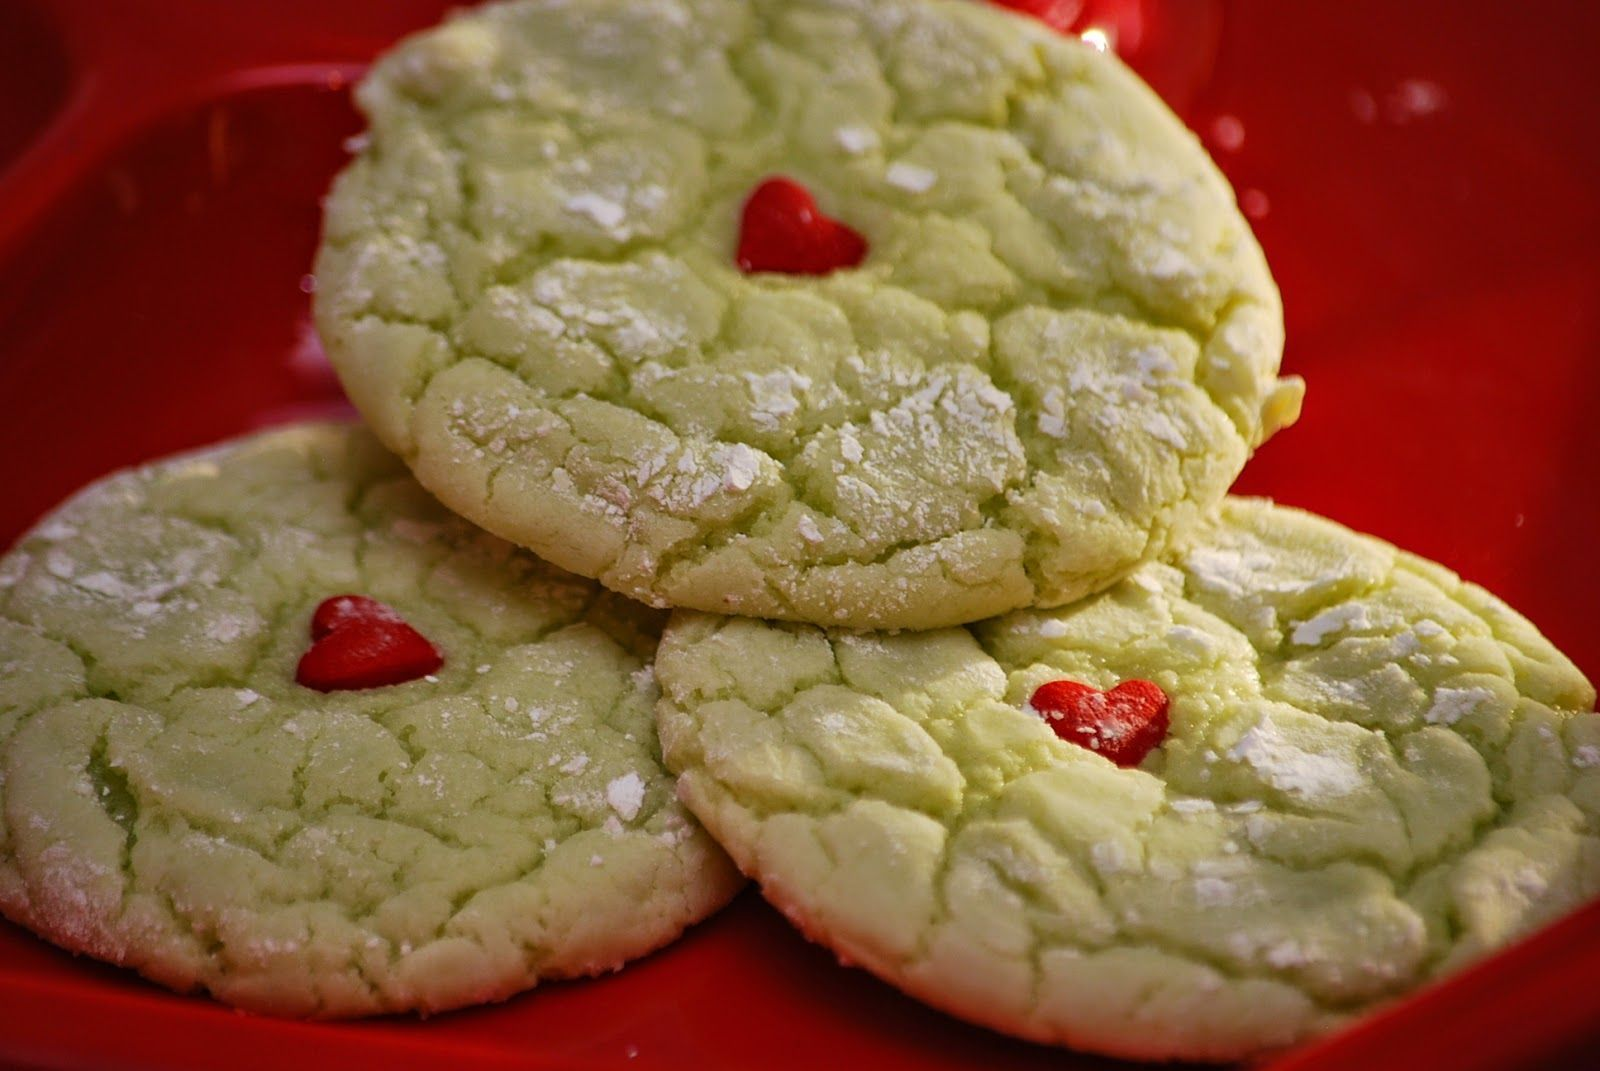 My story in recipes: Grinch Cookies #grinchcookies My story in recipes: Grinch Cookies #grinchcookies My story in recipes: Grinch Cookies #grinchcookies My story in recipes: Grinch Cookies #grinchcookies My story in recipes: Grinch Cookies #grinchcookies My story in recipes: Grinch Cookies #grinchcookies My story in recipes: Grinch Cookies #grinchcookies My story in recipes: Grinch Cookies #grinchcookies